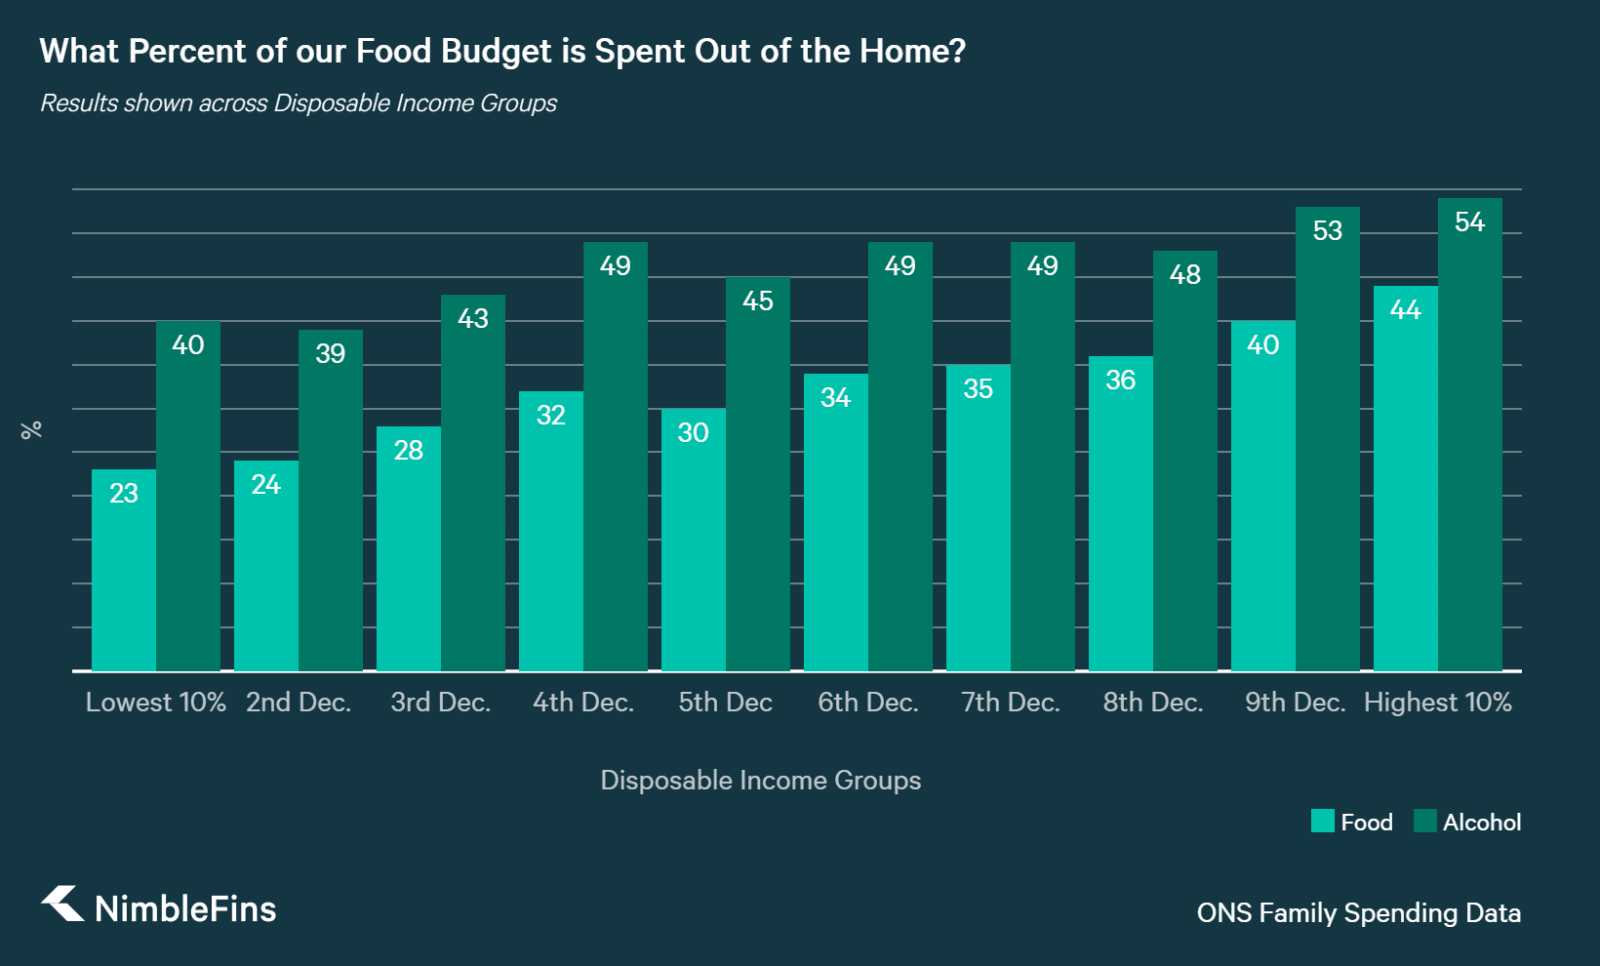 Chart showing what percent of food and drink budgets are spent out of the home, by disposable income decile.